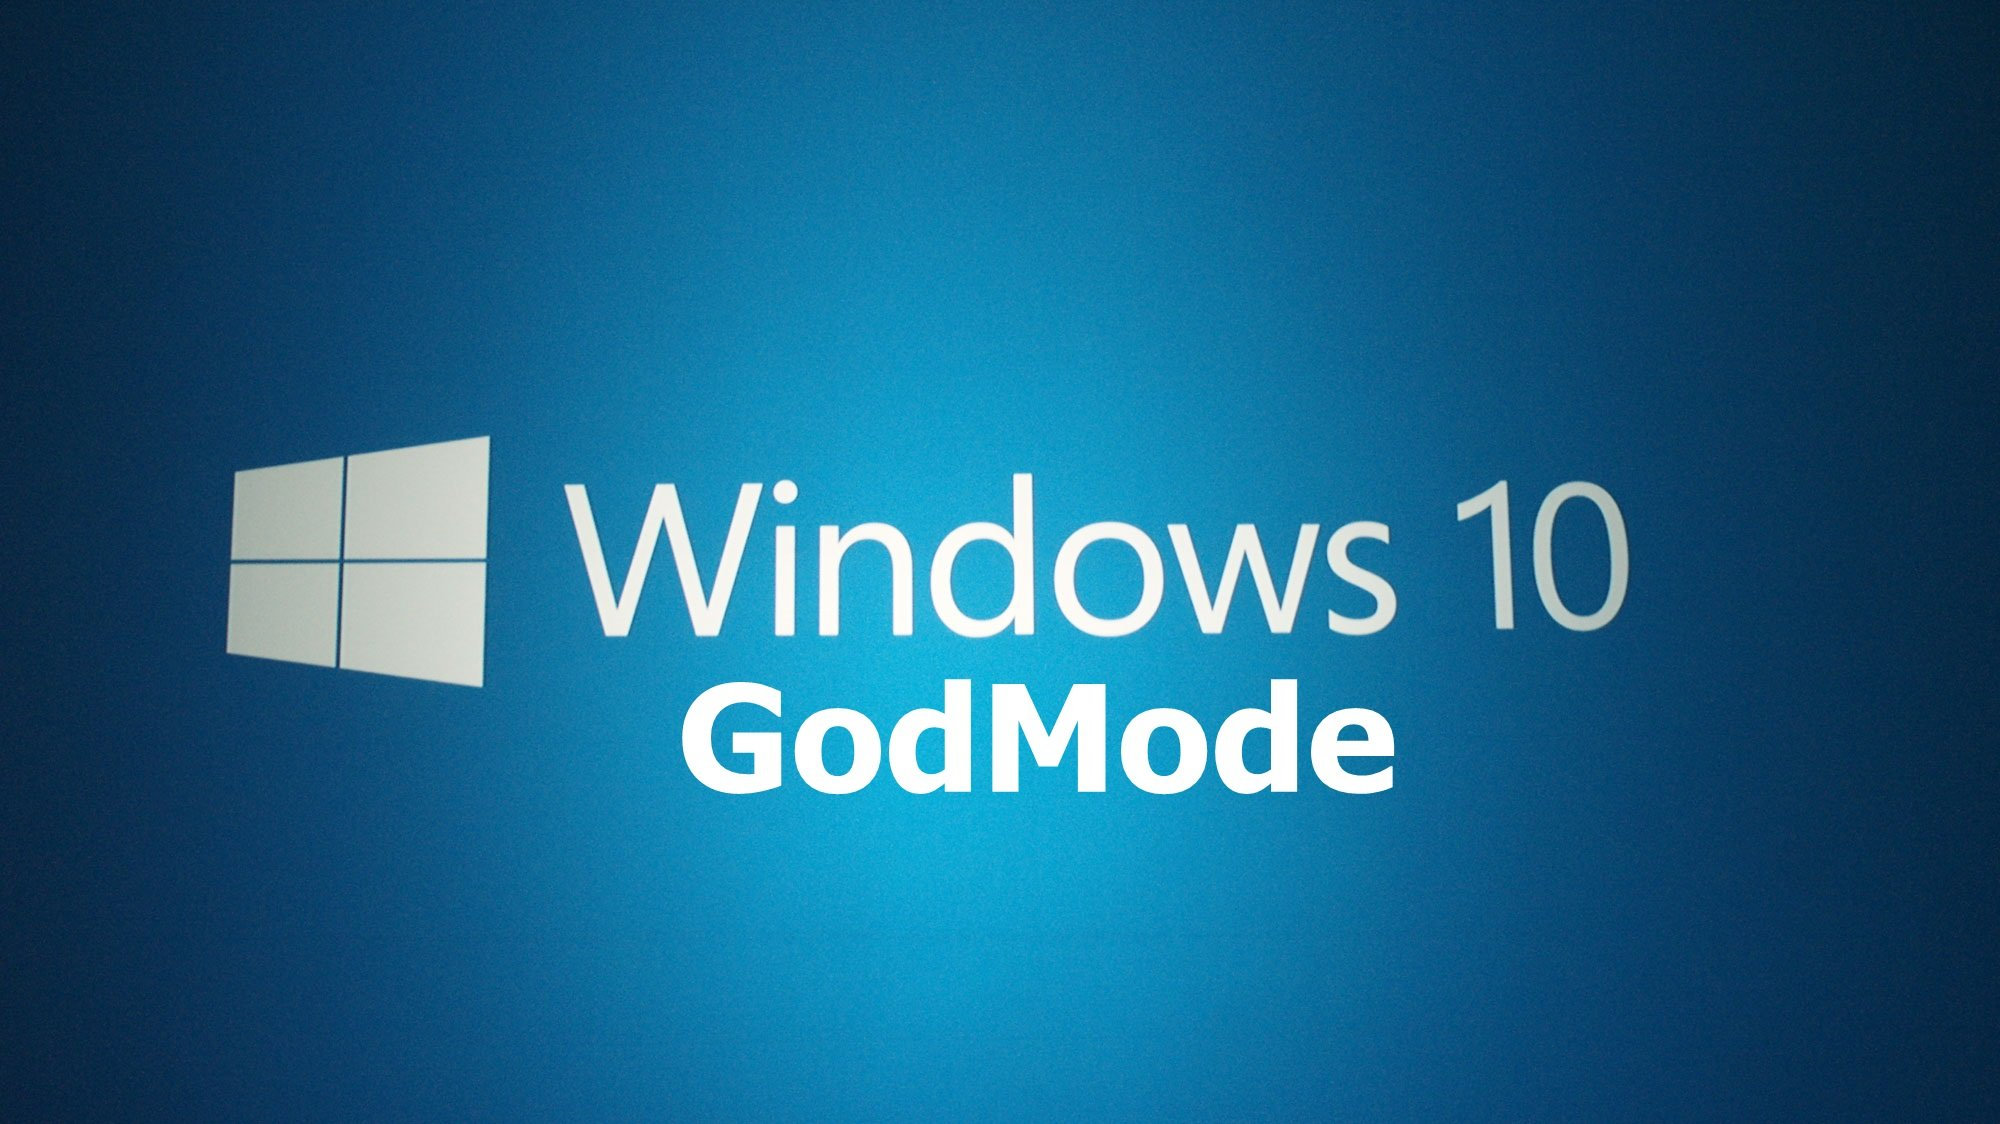 dd9ab6976292d5f4b58fa4fb56a6040d - Windows 10 God Mode